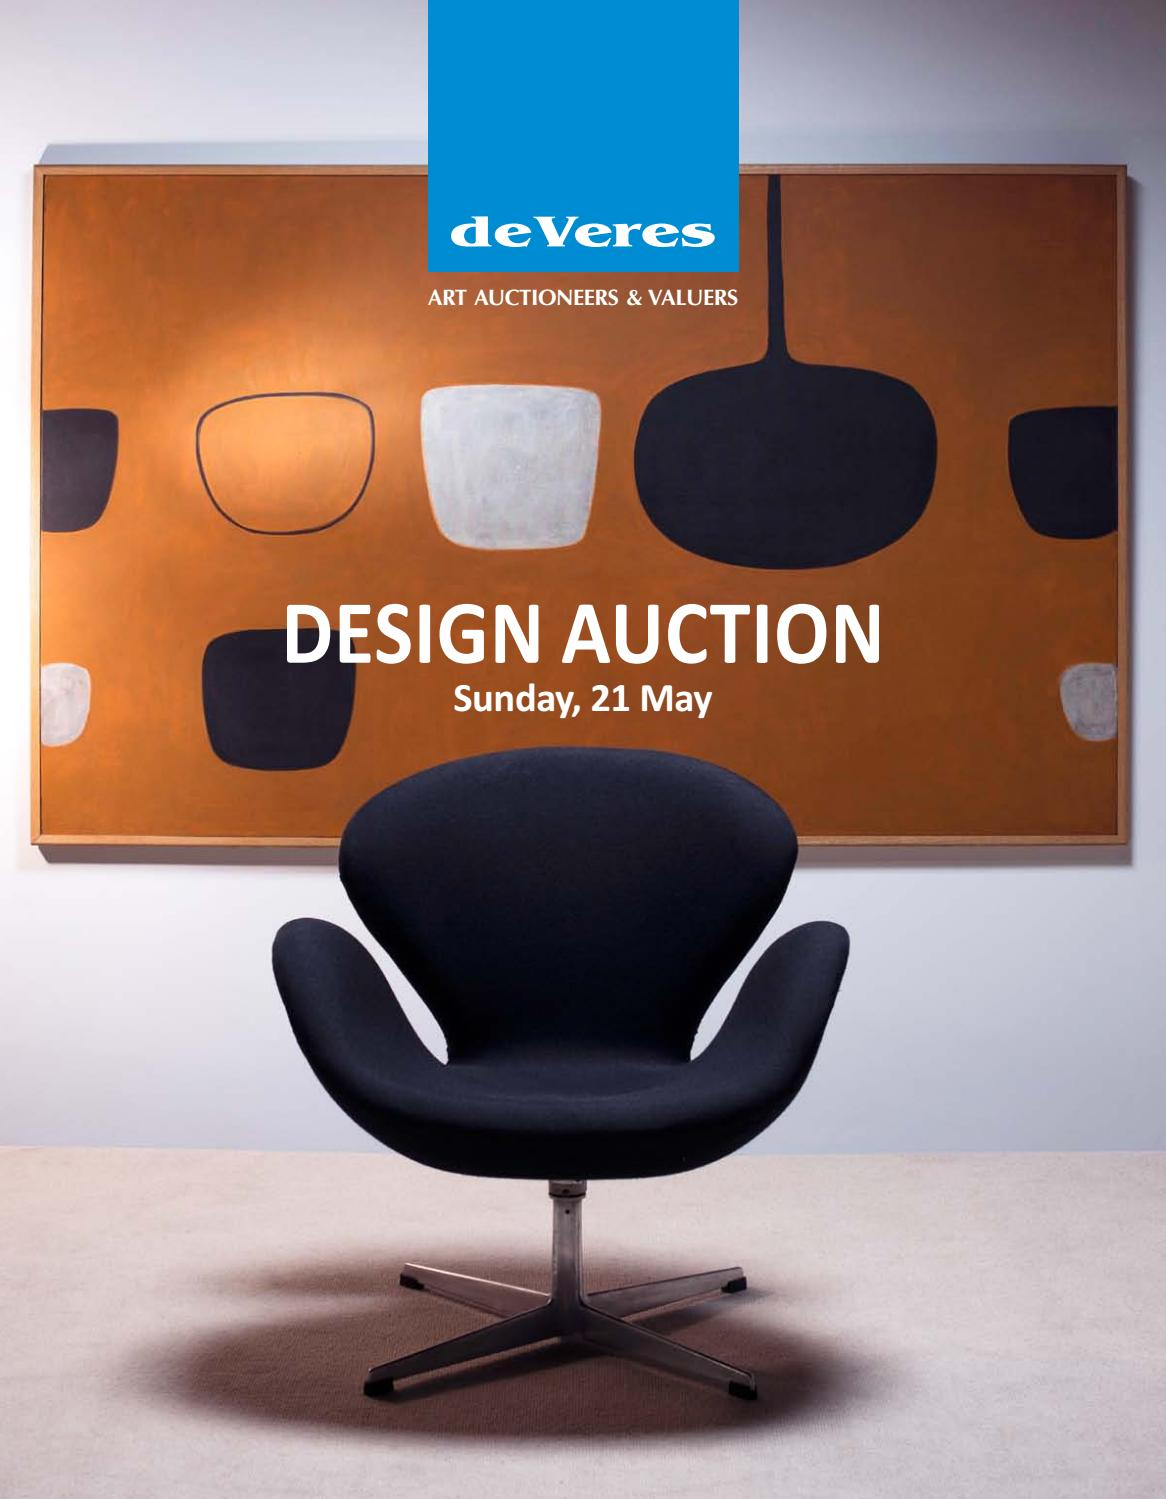 Ligne Roset Bern The Design Auction By De Veres Art Auctions Issuu